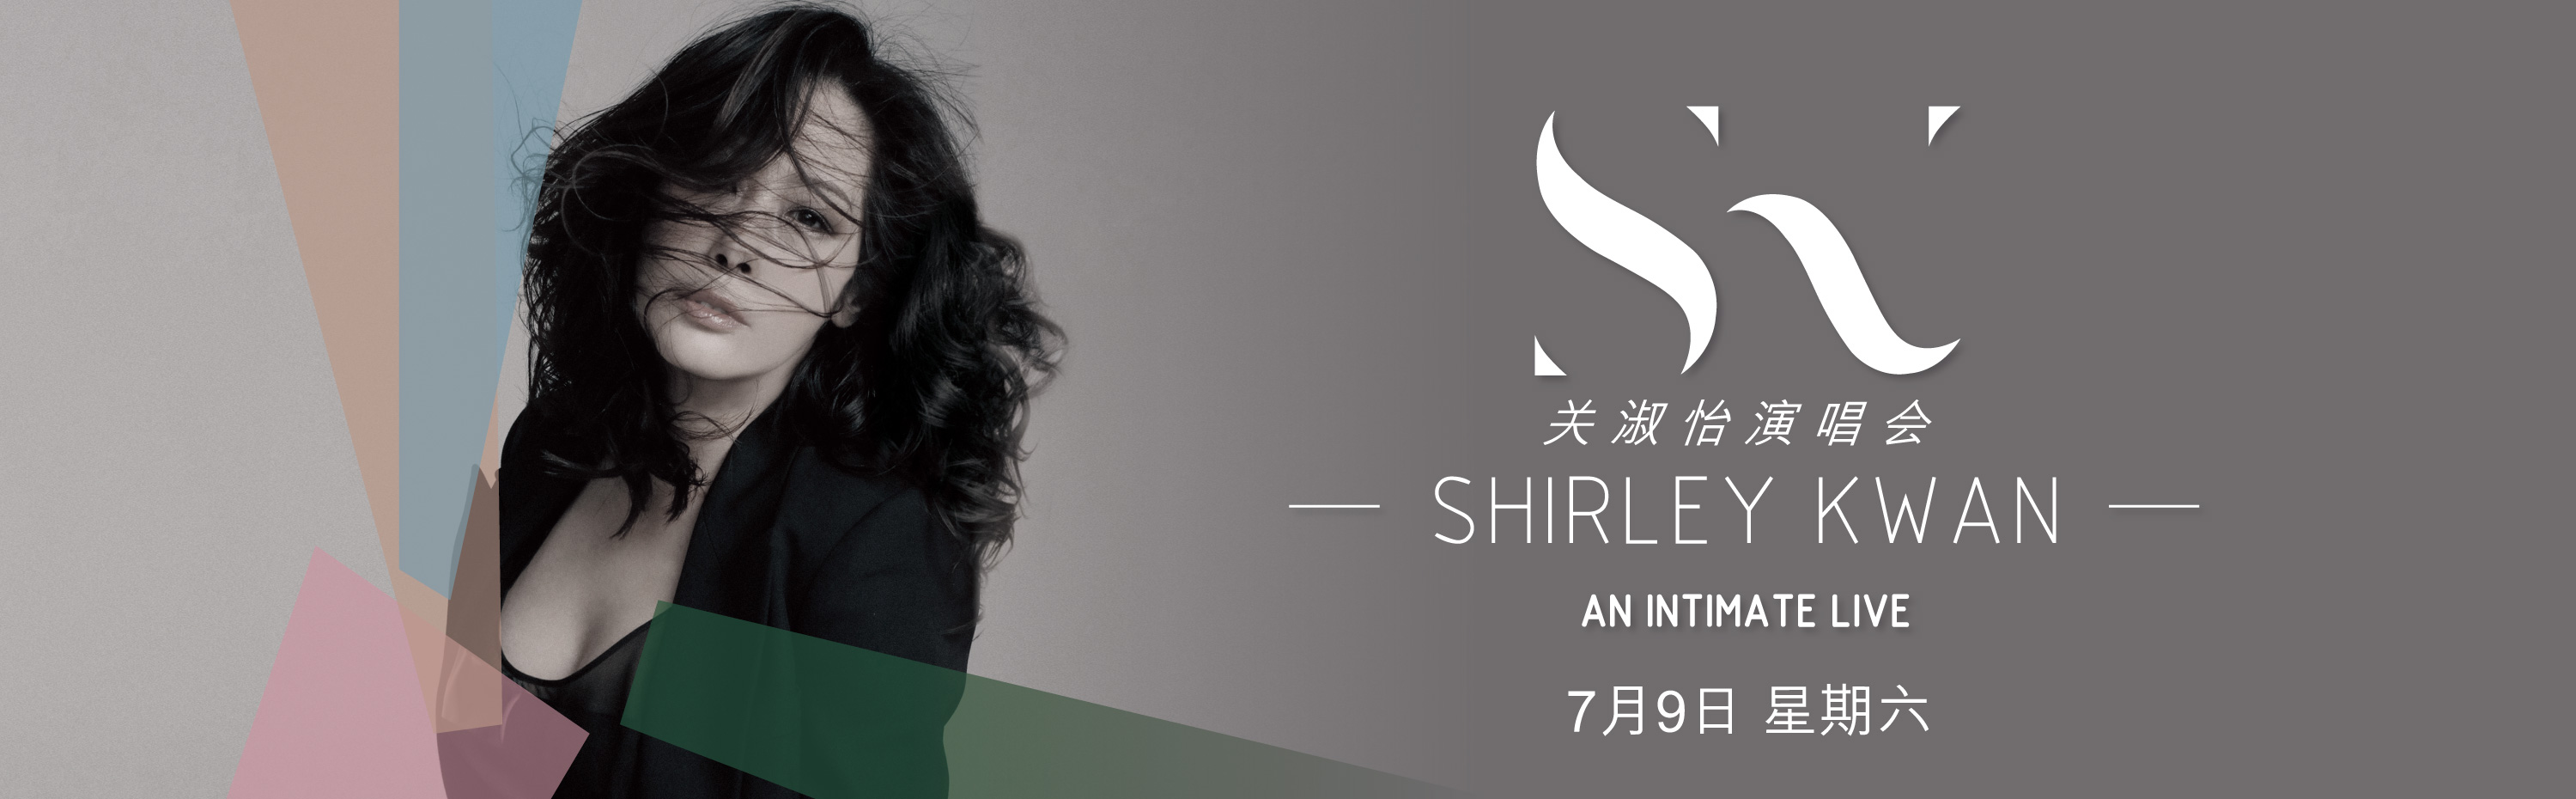 SHIRLEY KWAN AN INTIMATE LIVE